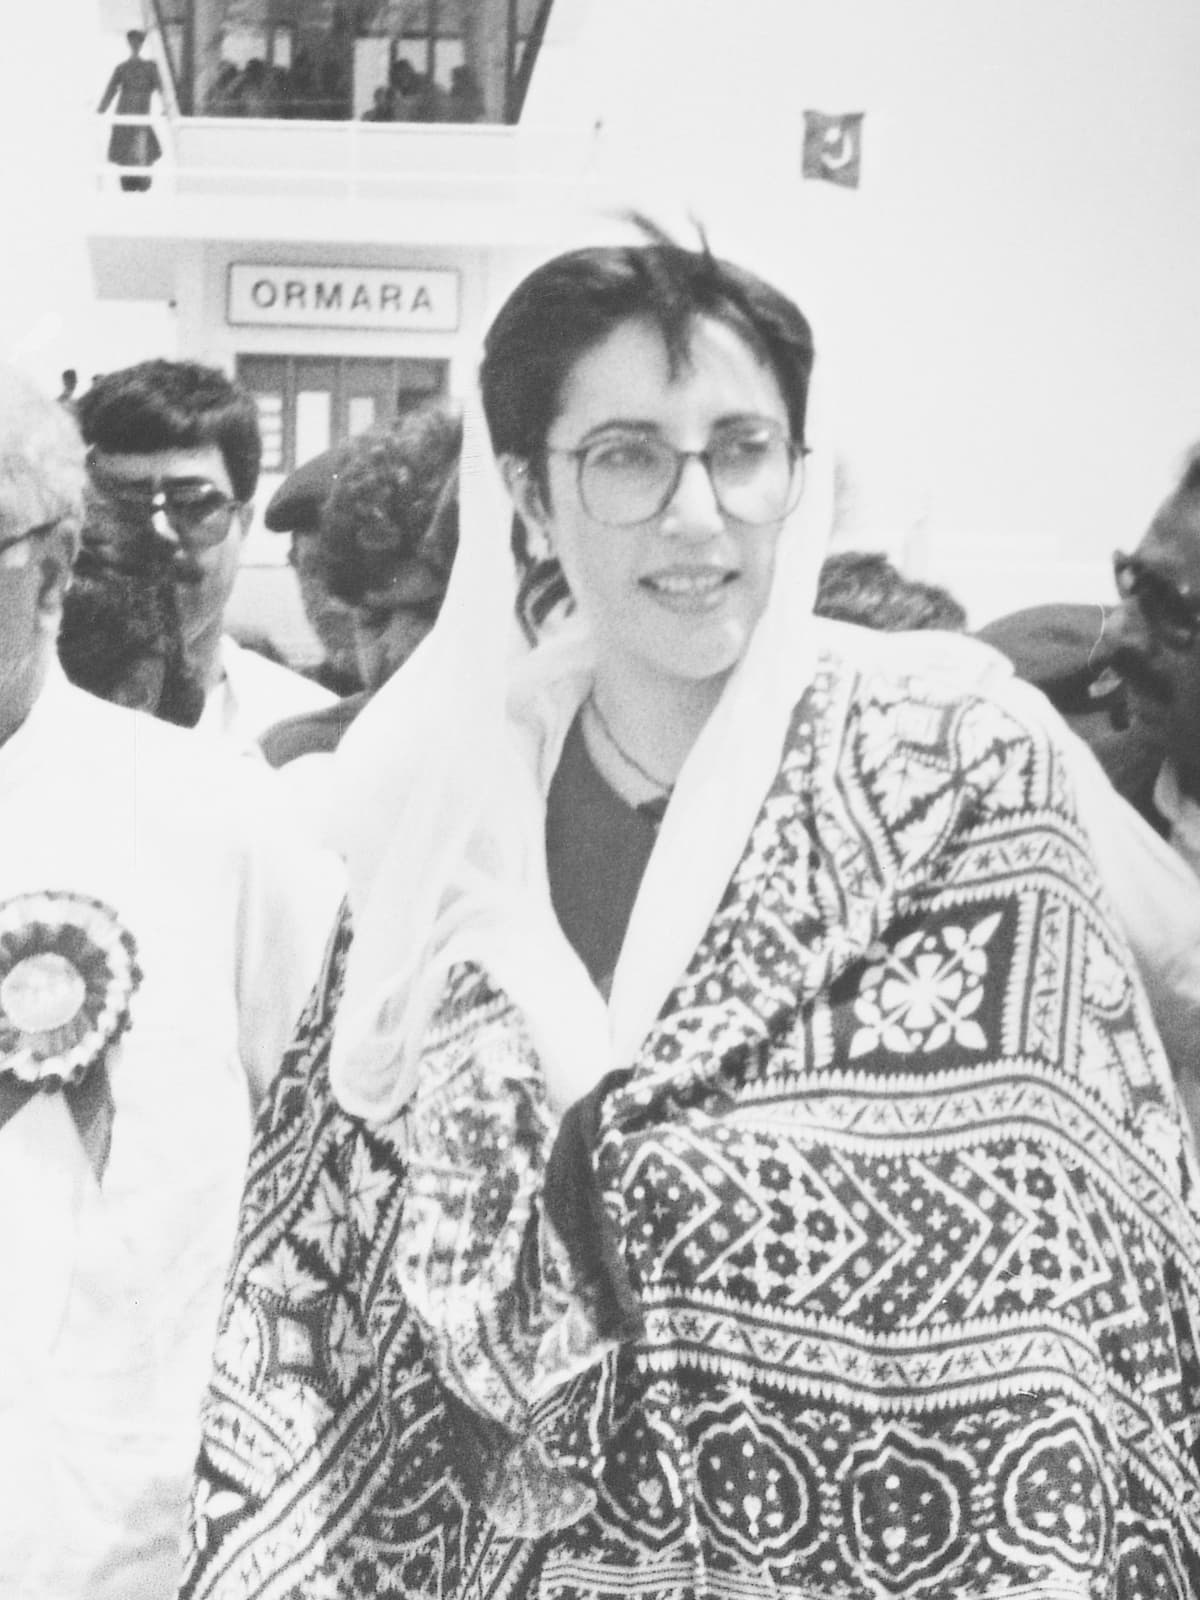 Benazir Bhutto at Ormara airport in Balochistan | Hasan Bozai, White Star